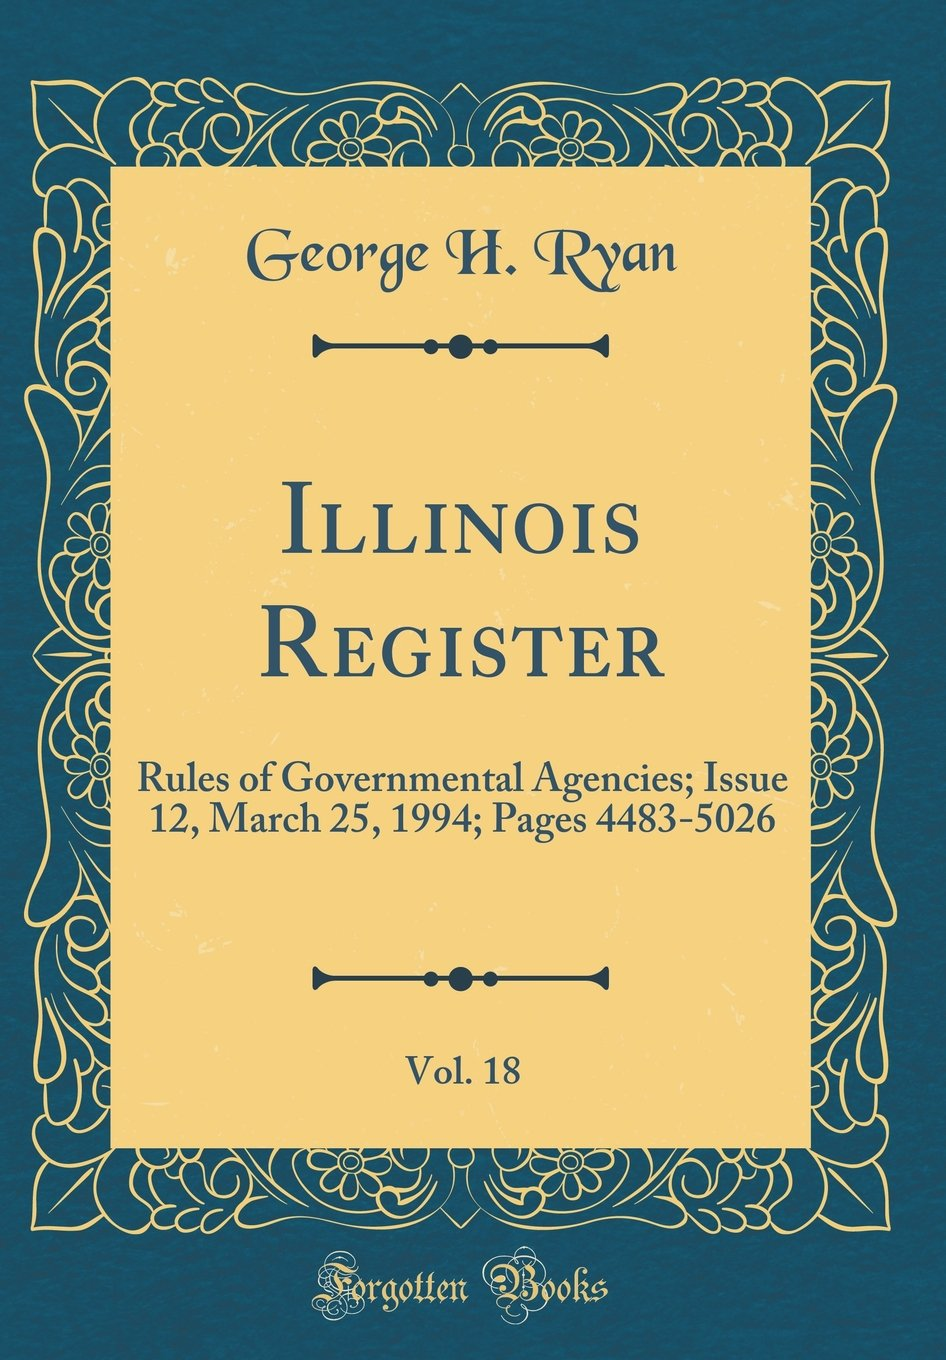 Download Illinois Register, Vol. 18: Rules of Governmental Agencies; Issue 12, March 25, 1994; Pages 4483-5026 (Classic Reprint) PDF